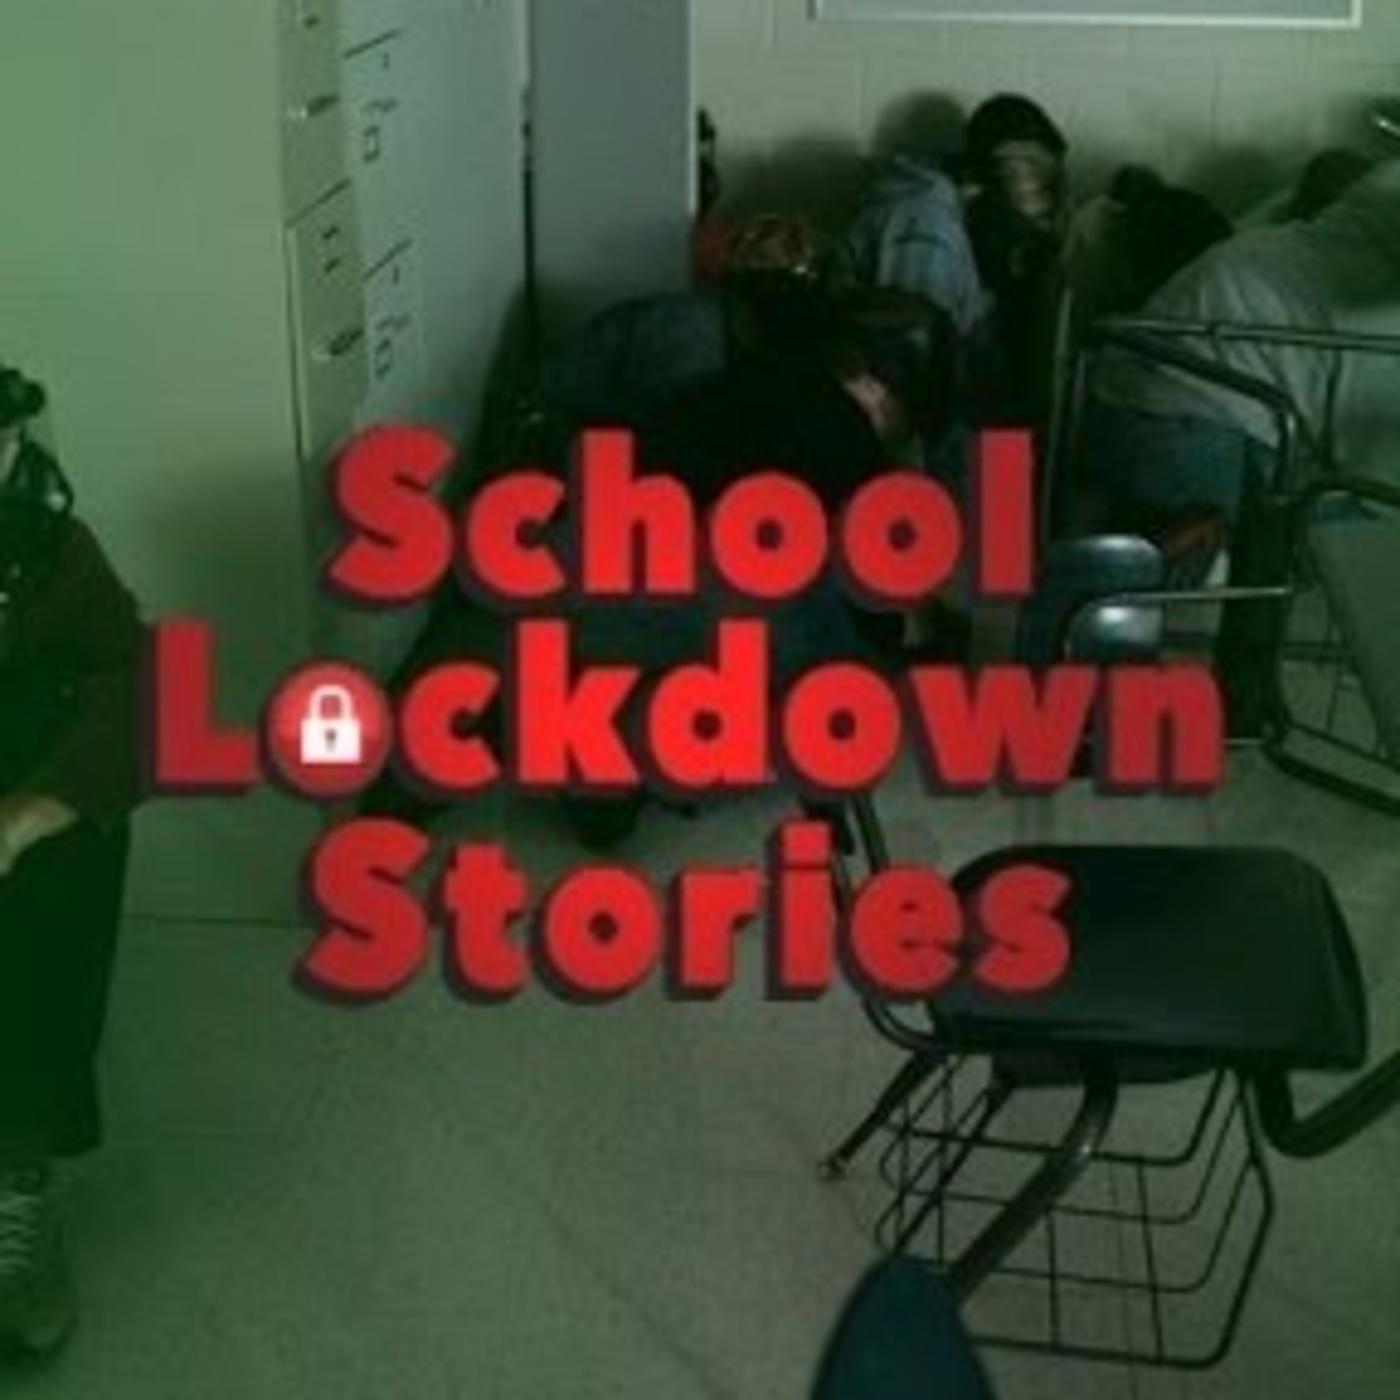 3 Creepy True School Lockdown Stories Mr Nightmare Podcast Listen Notes Nightamre for about 2 years now and i've only now begun to. 3 creepy true school lockdown stories